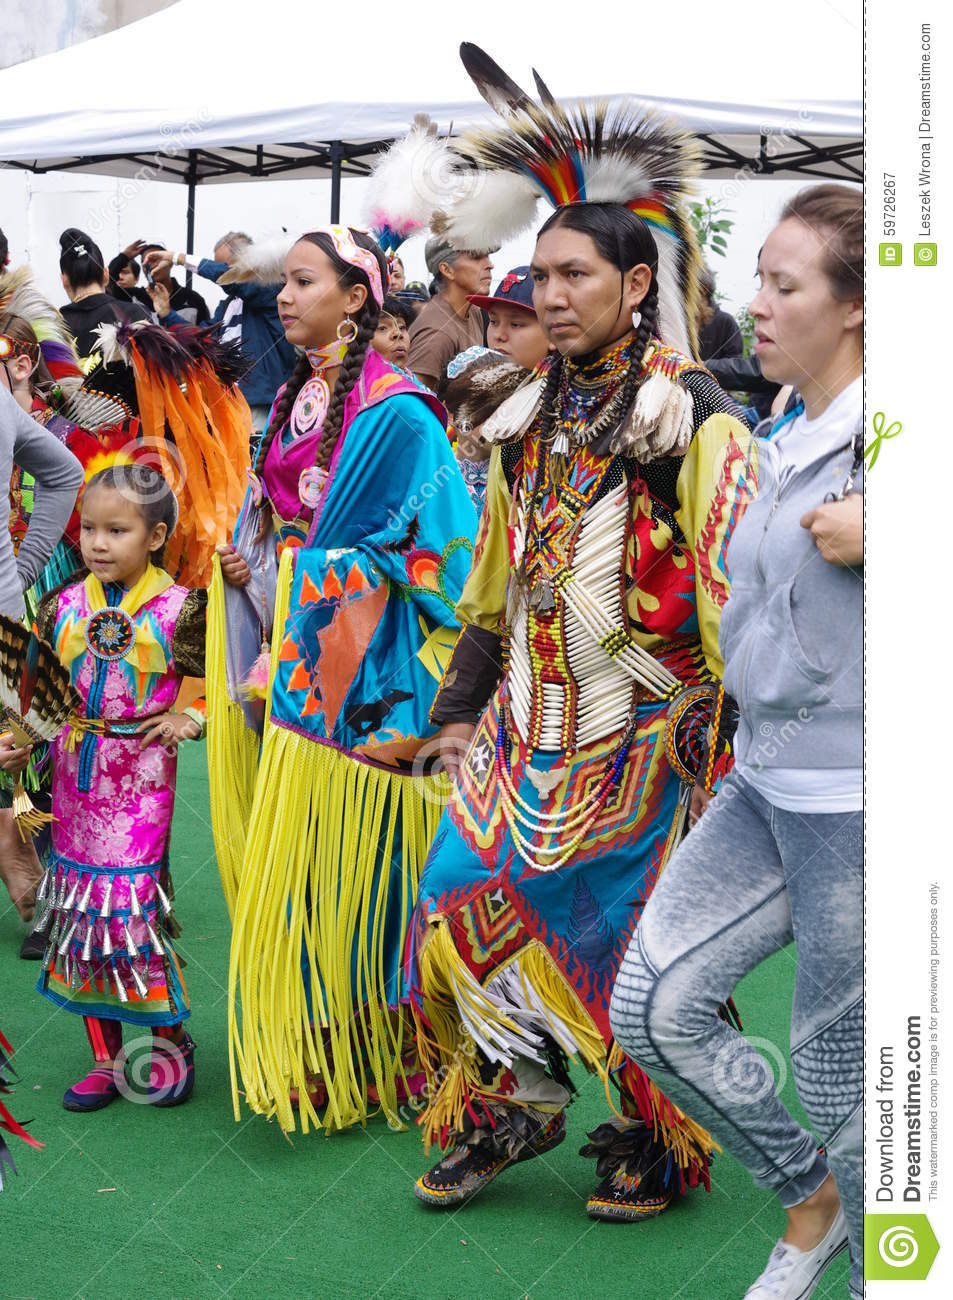 Pow-wow dancers of the plains tribes of Canada